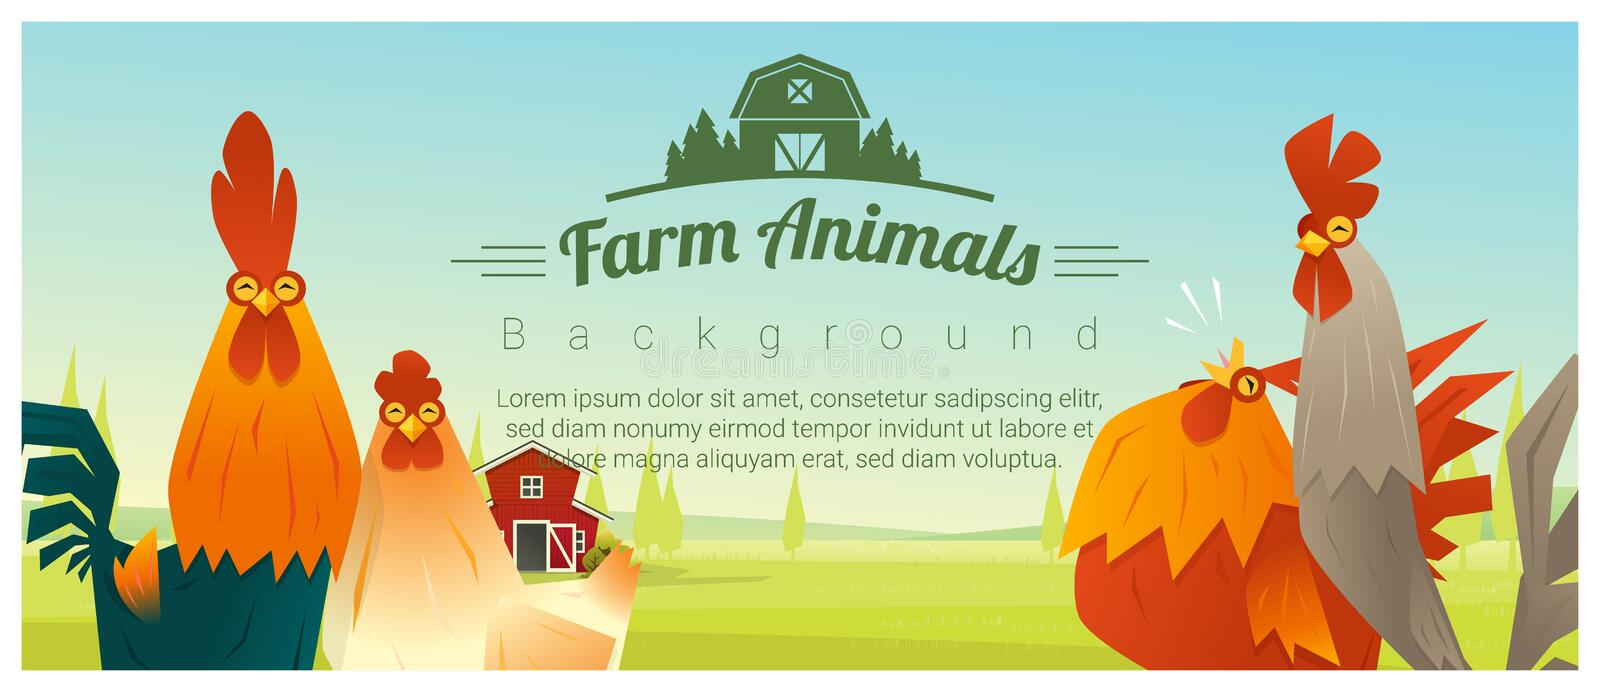 Farm animal and Rural landscape background with chickens vector illustration